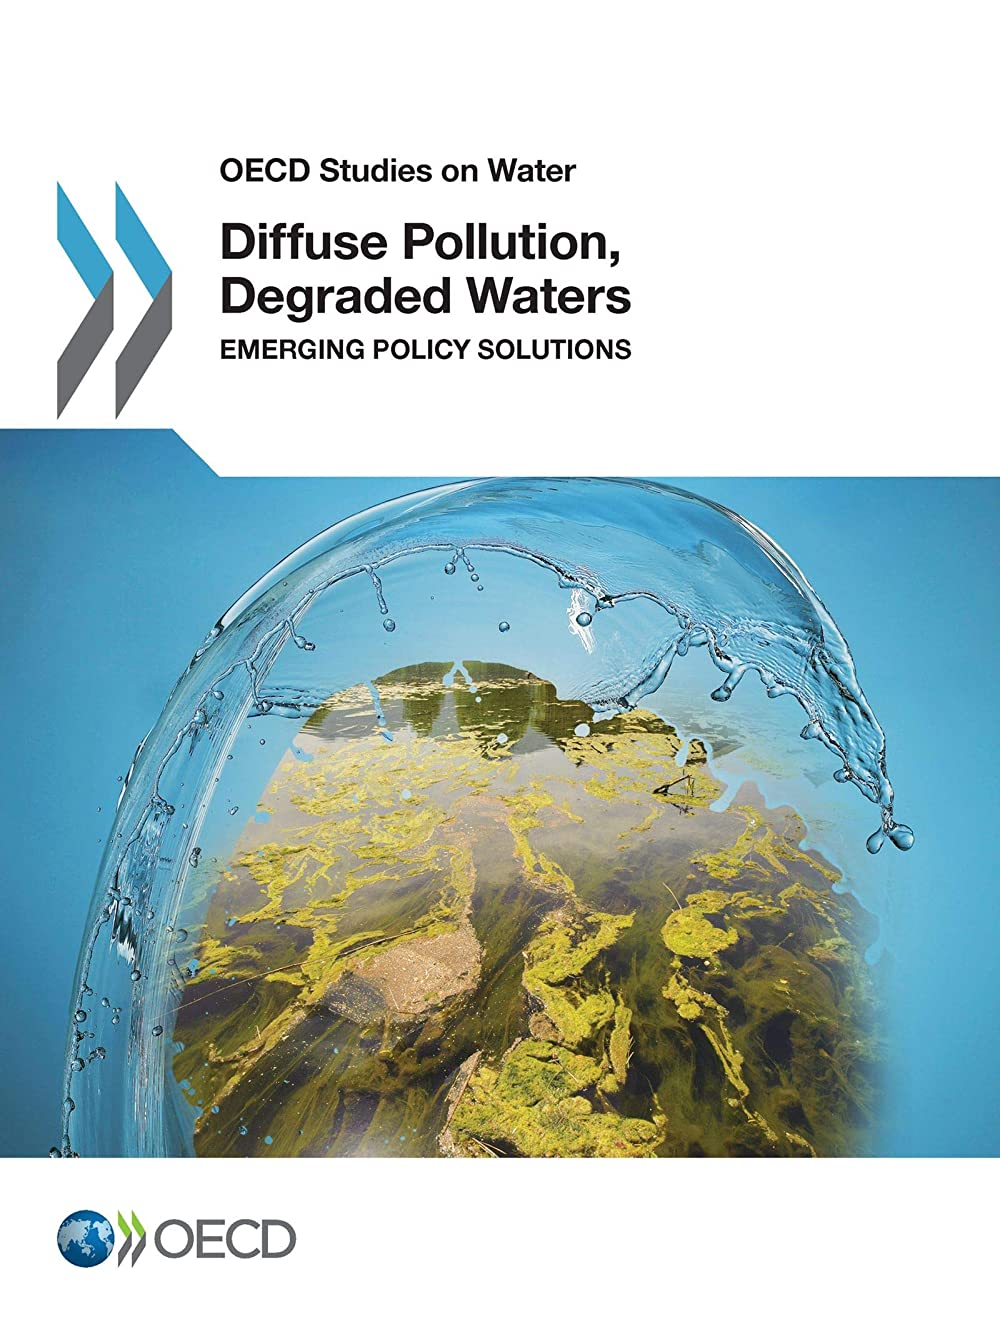 Diffuse Pollution, Degraded Waters: Emerging Policy Solutions (OECD studies on water)